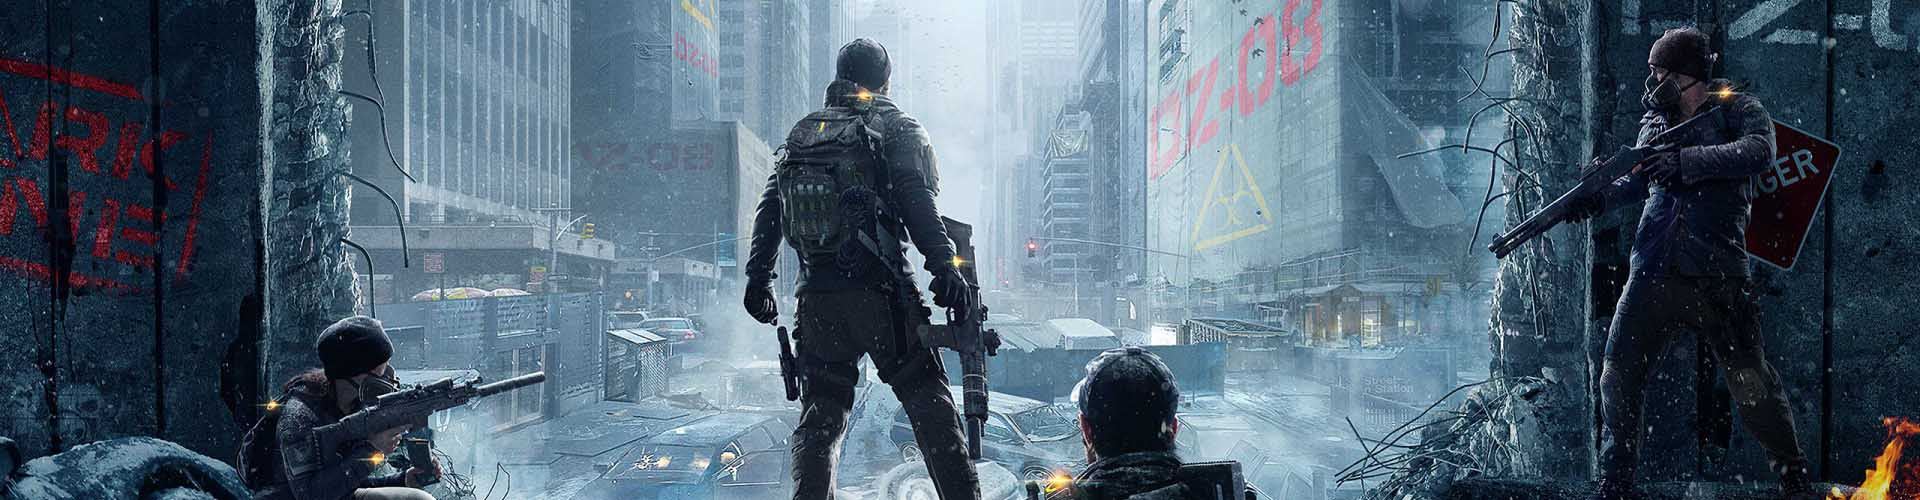 The Division 2 Release Date, Trailer, News and Rumors